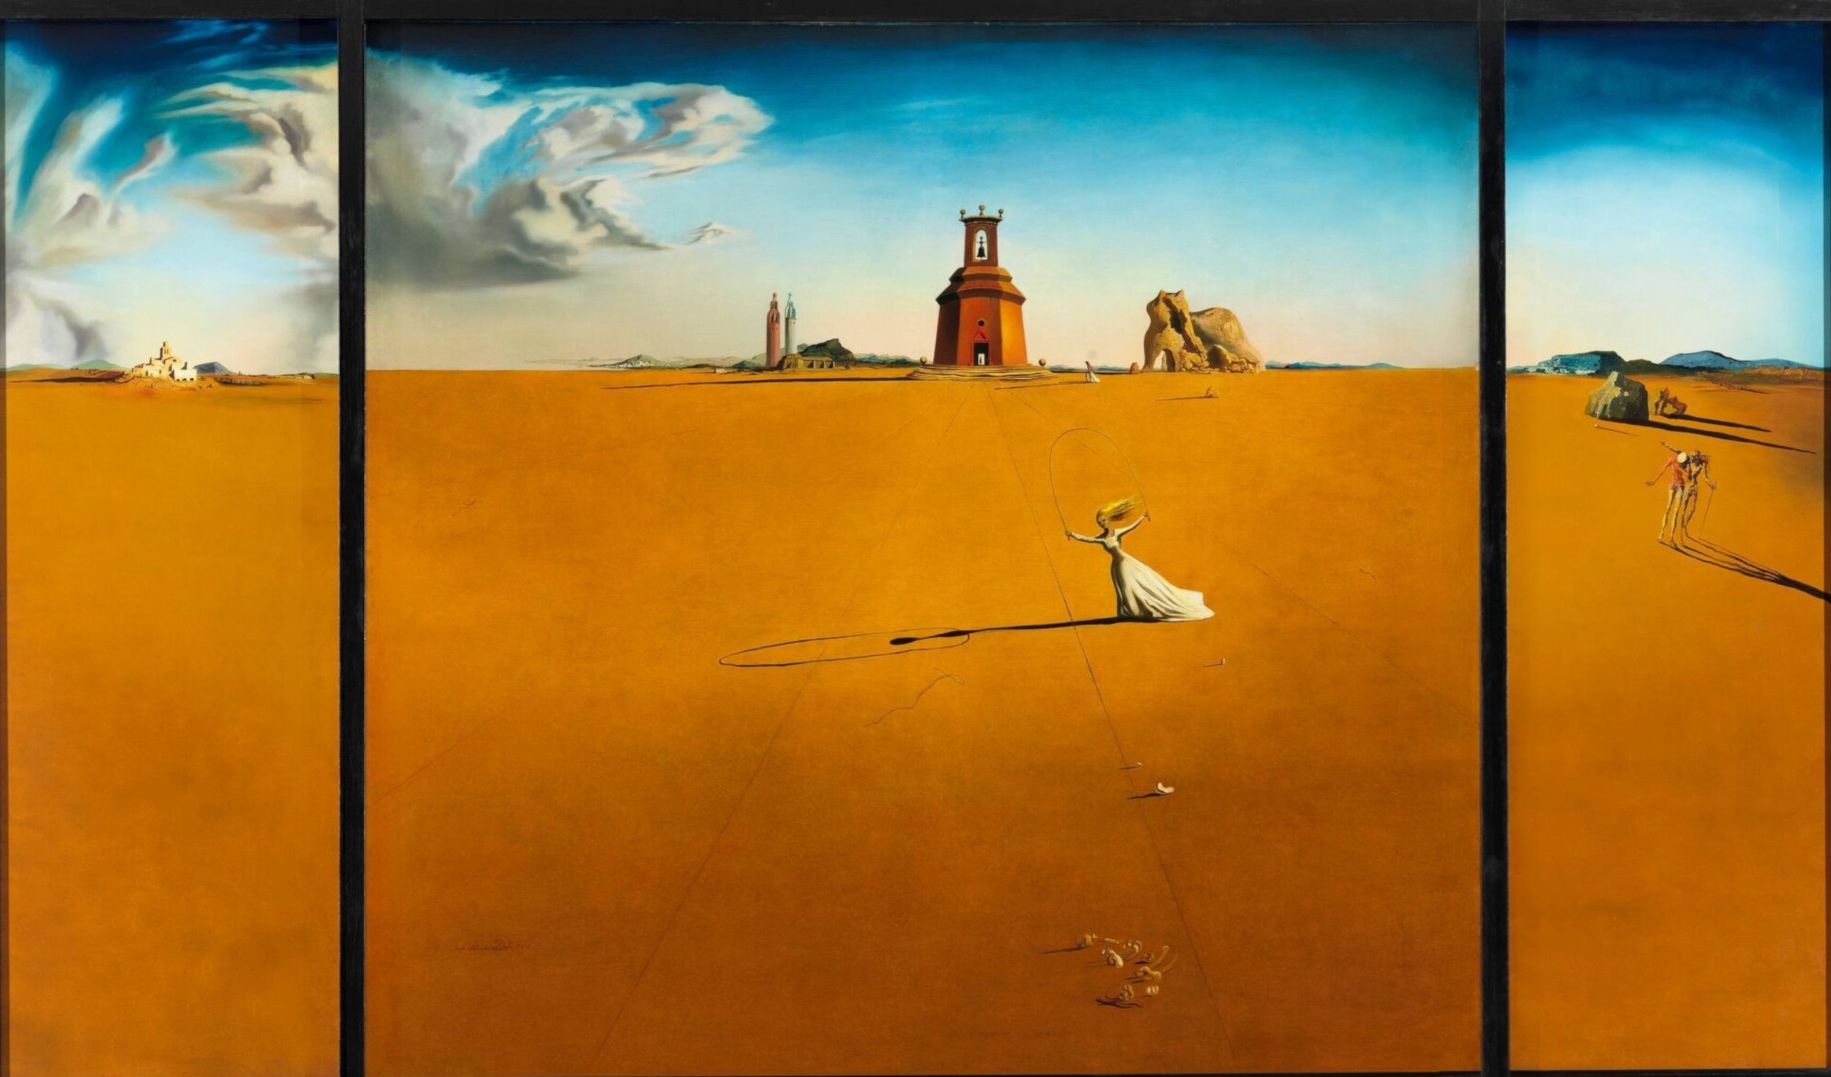 Dali_Landscape_with_a_Girl_Skipping_Rope